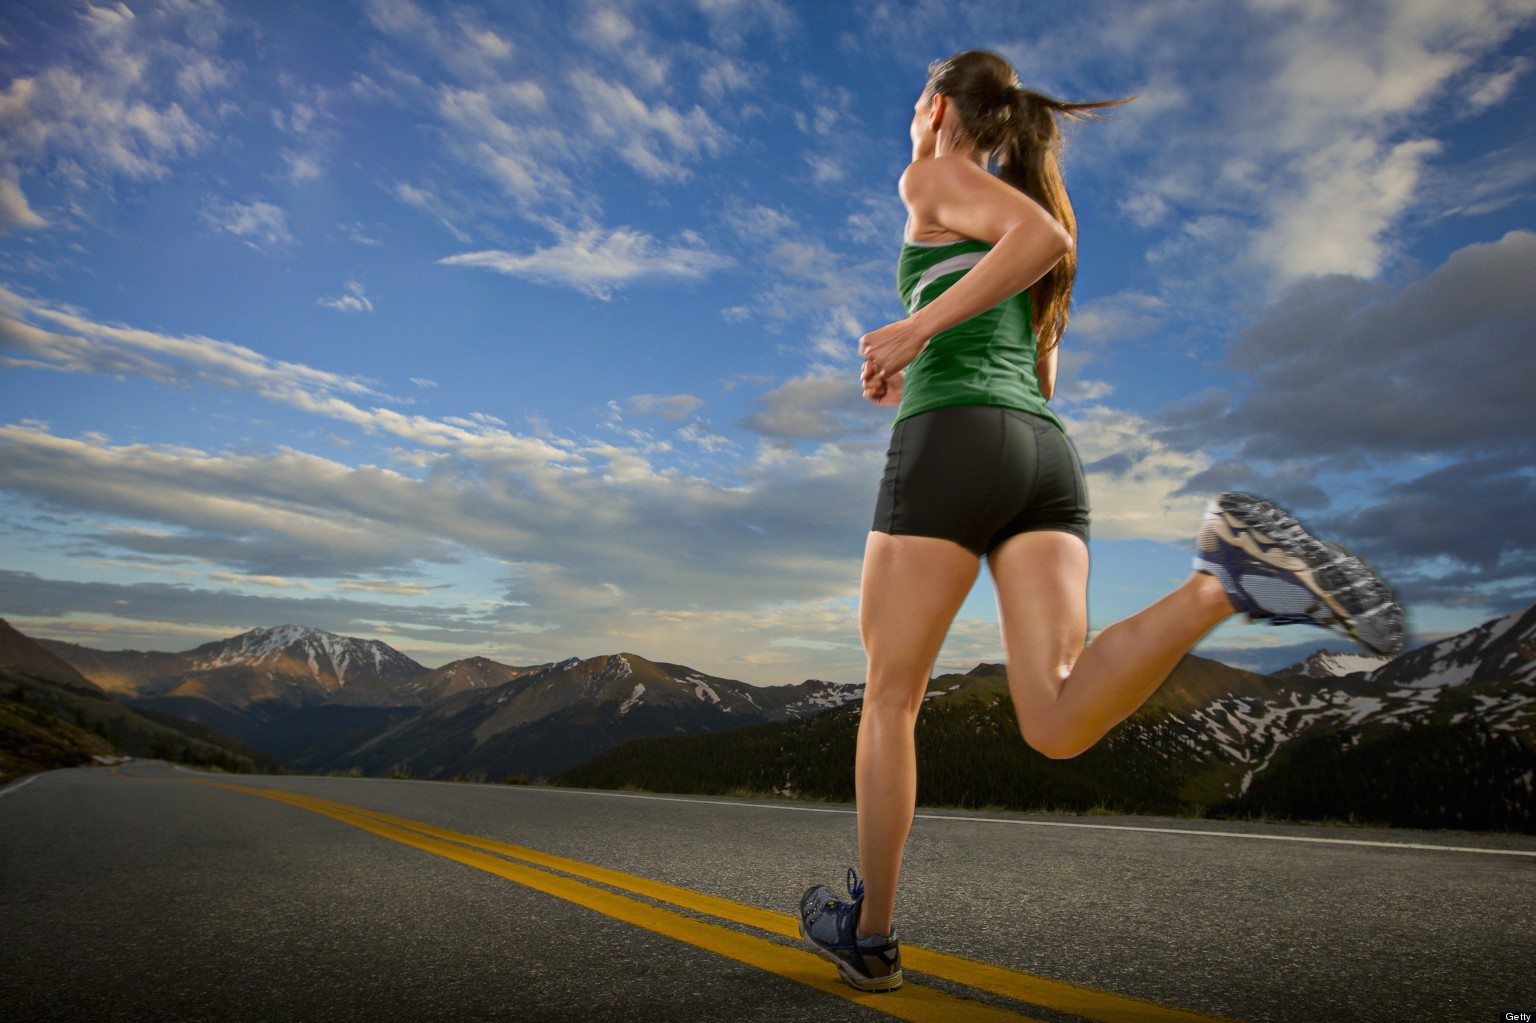 gift ideas for runners, gift ideas for sports fans